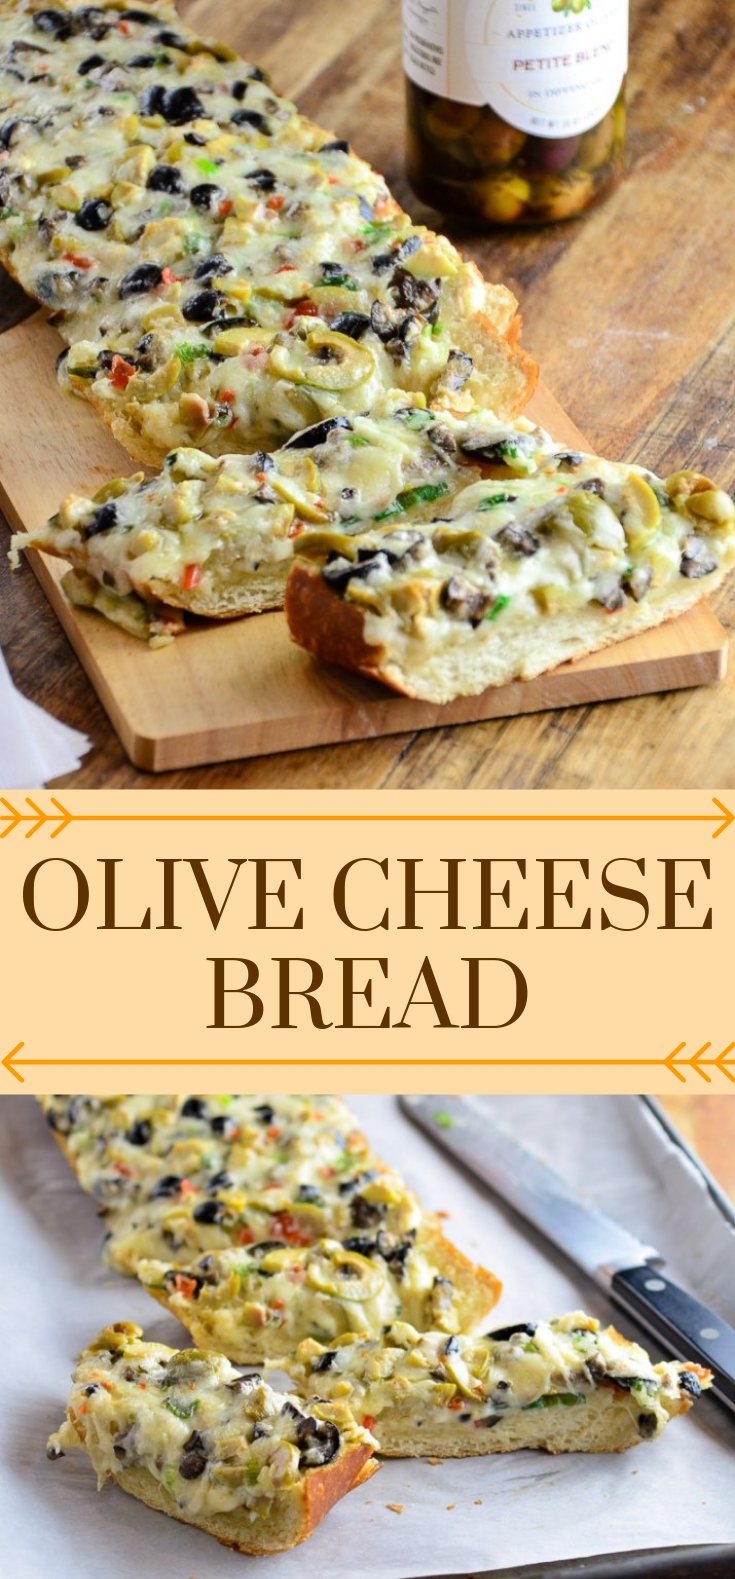 THE ULTIMATE APPETIZER: OLIVE CHEESE BREAD #foodrecipe #easy